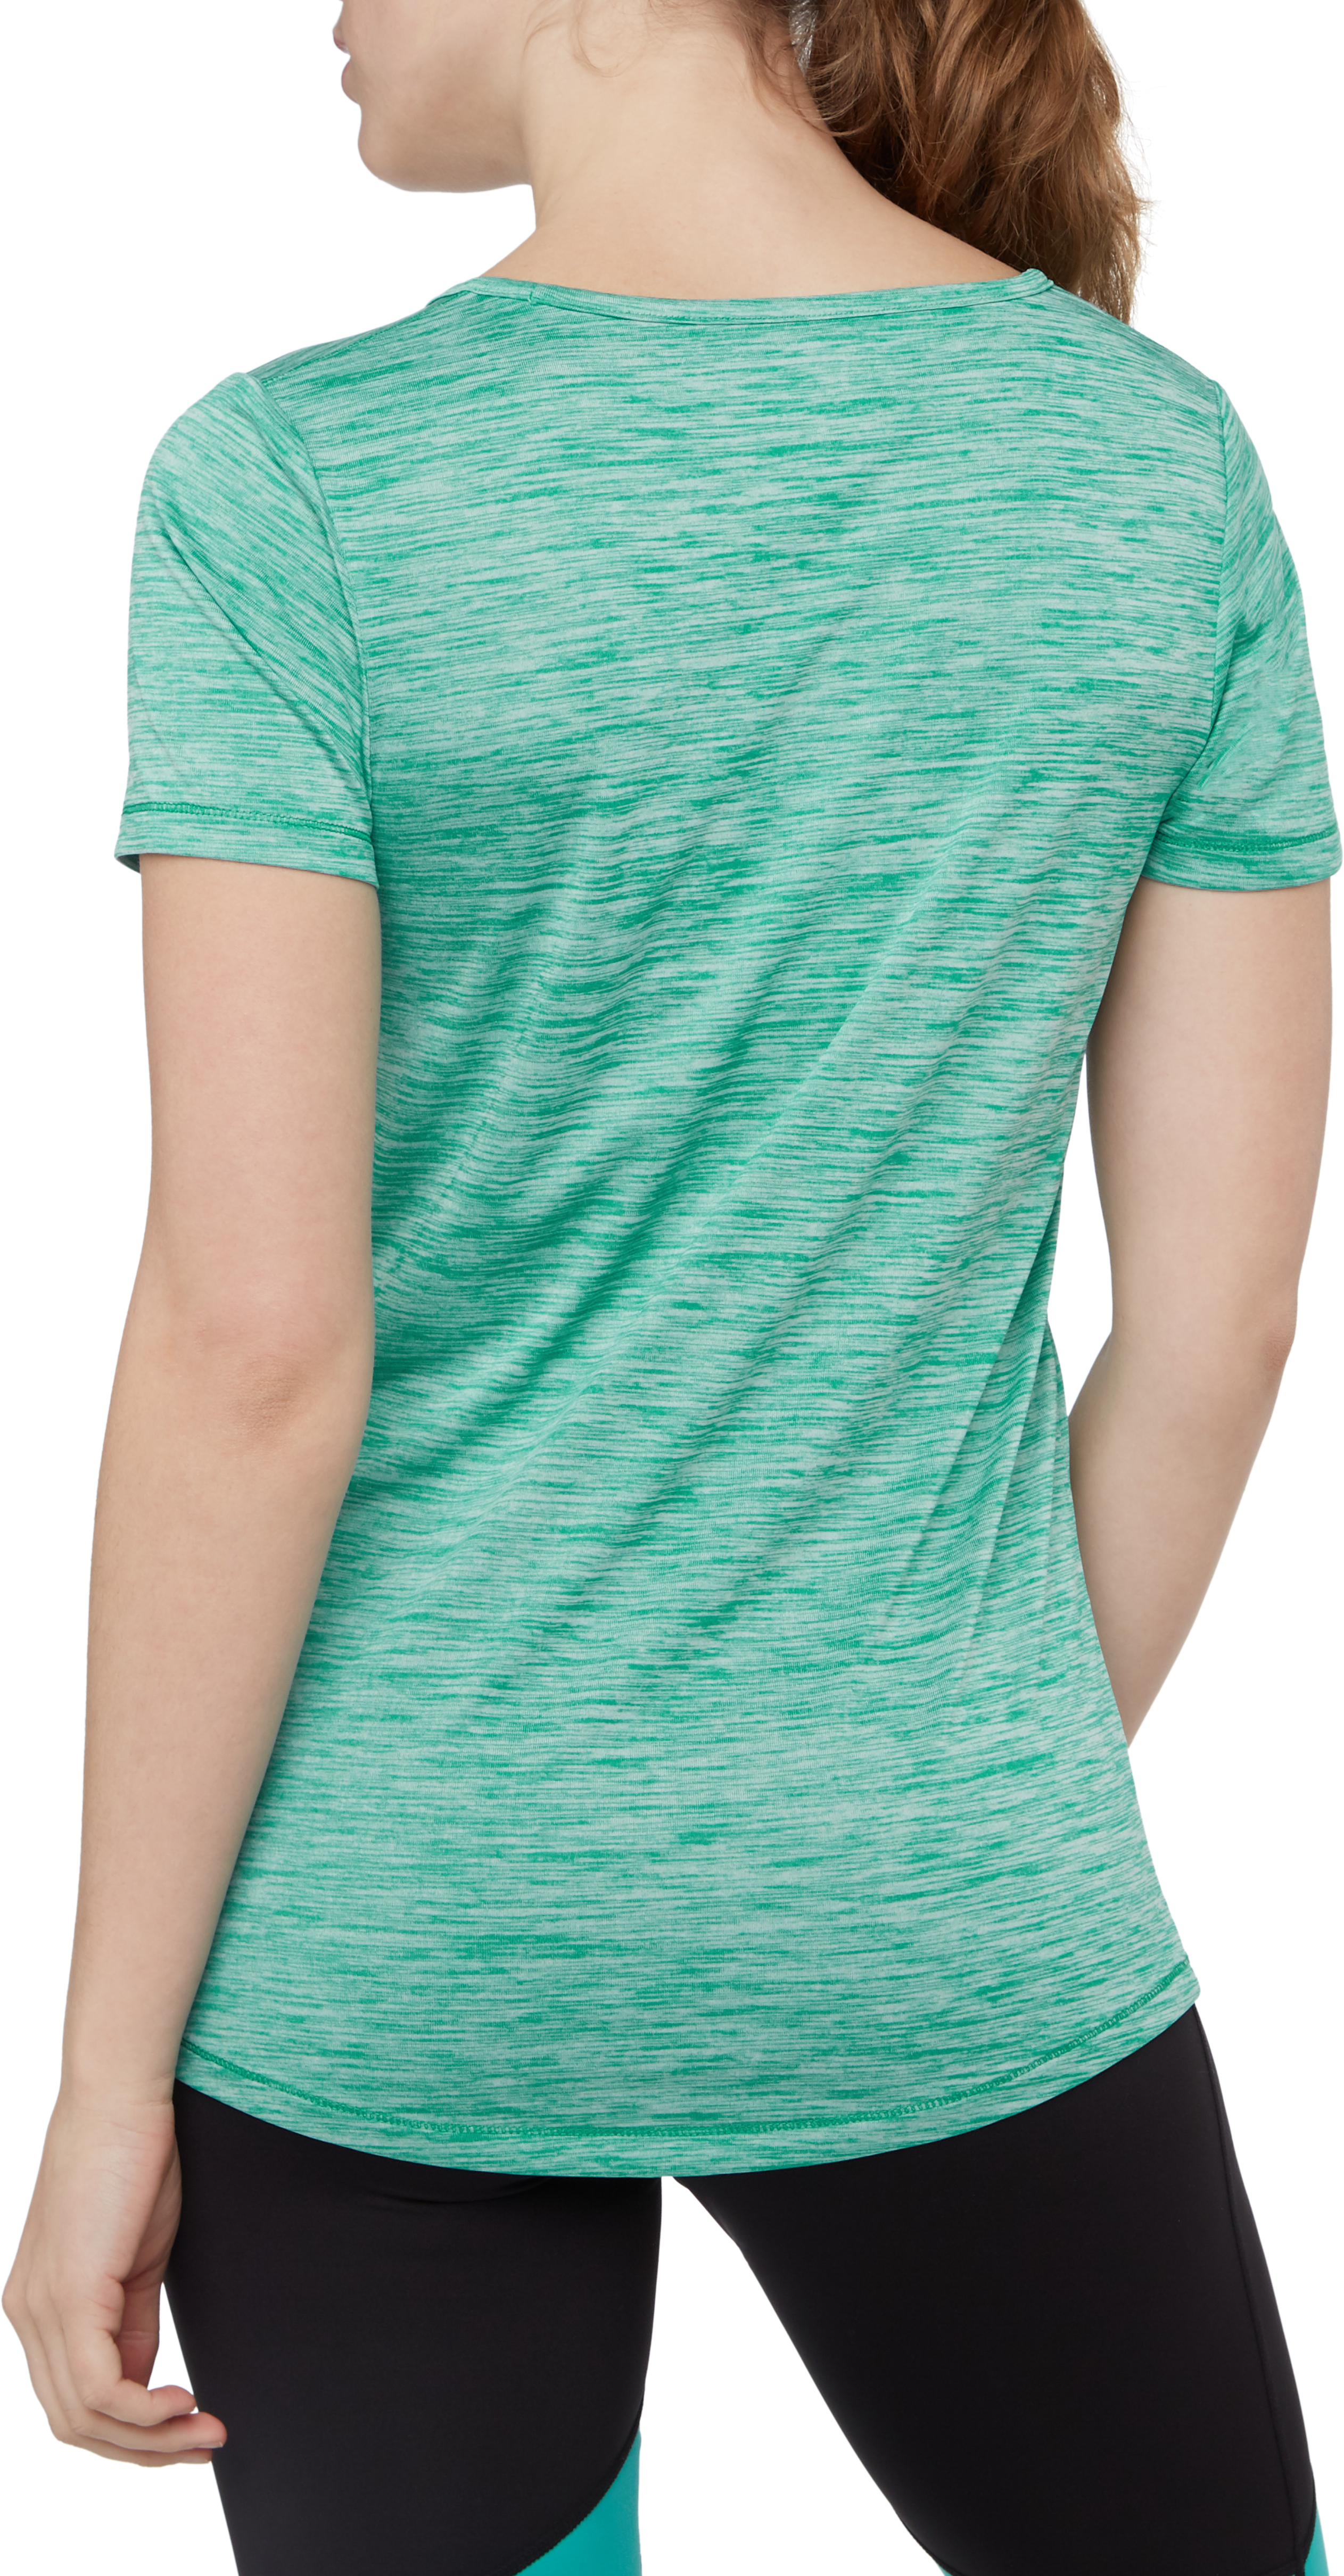 Gaminel 2 Tee Aqua Back